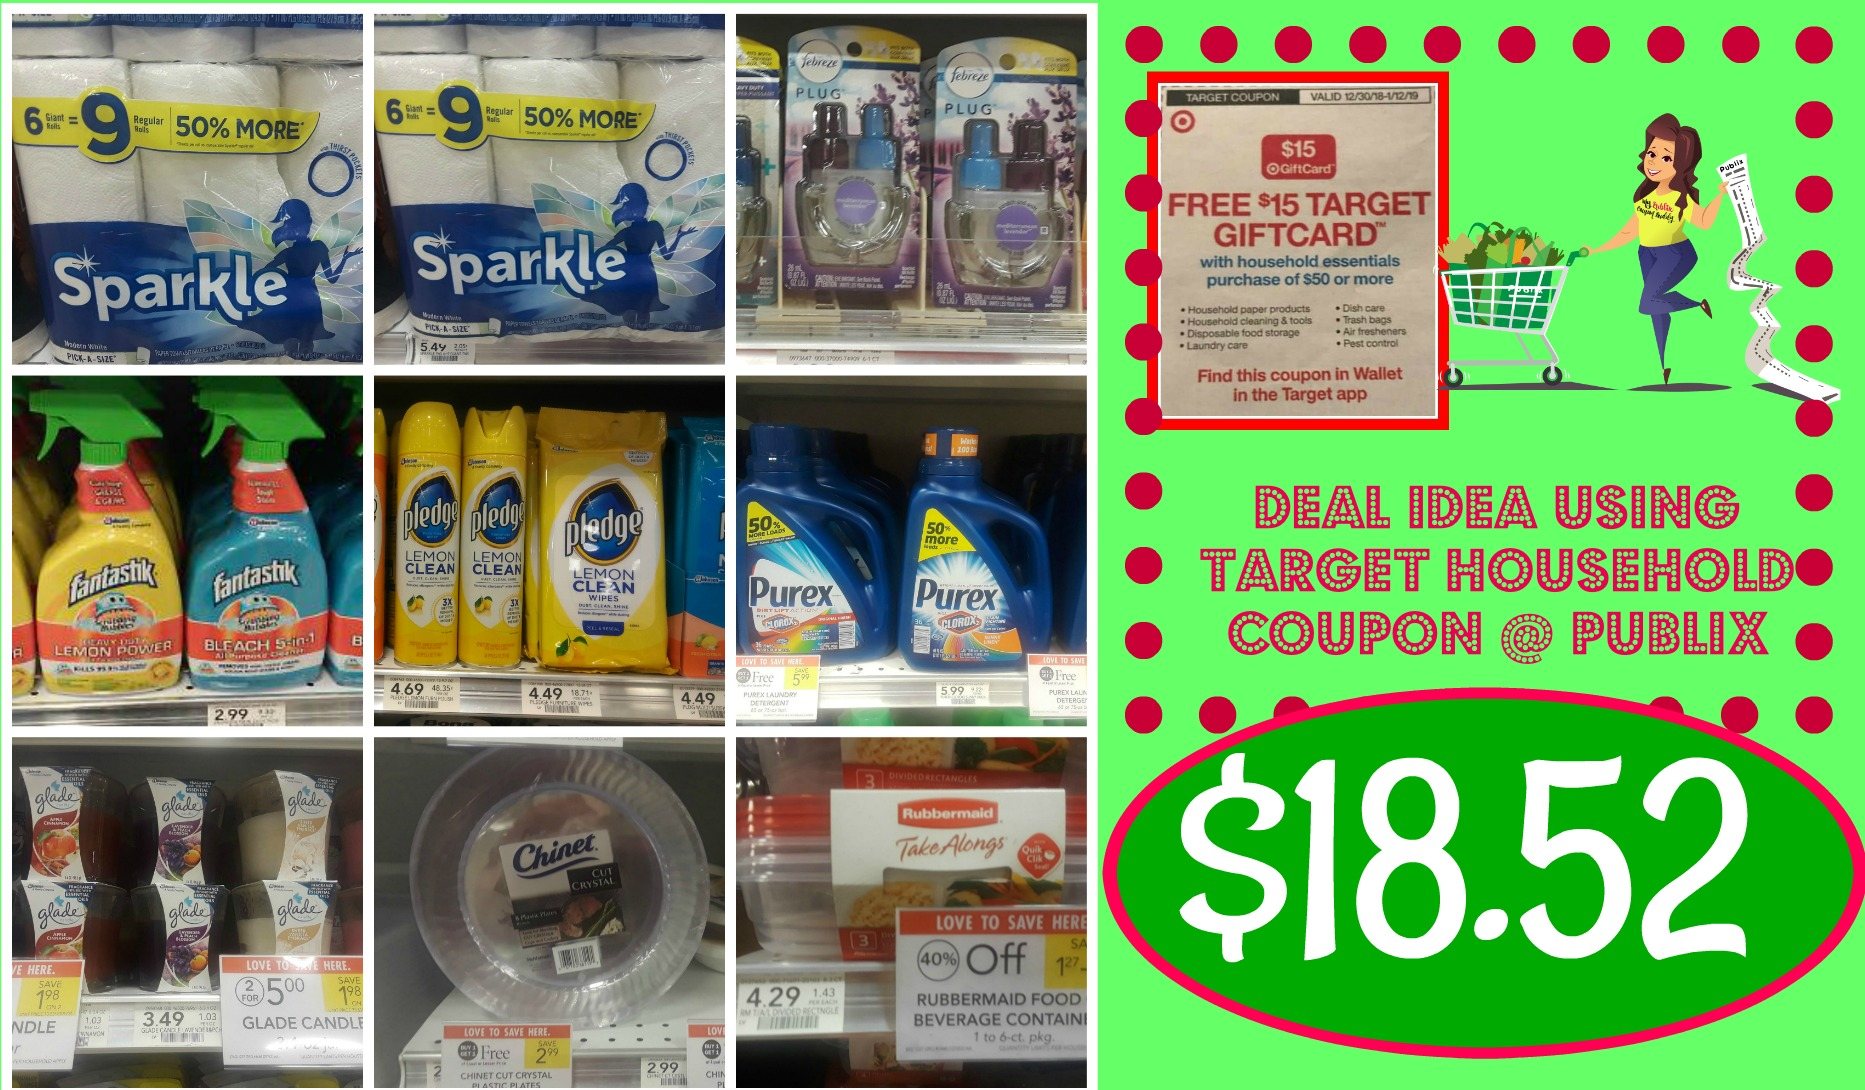 Target Household Coupon Idea At Publix 12 30 12 31 Only